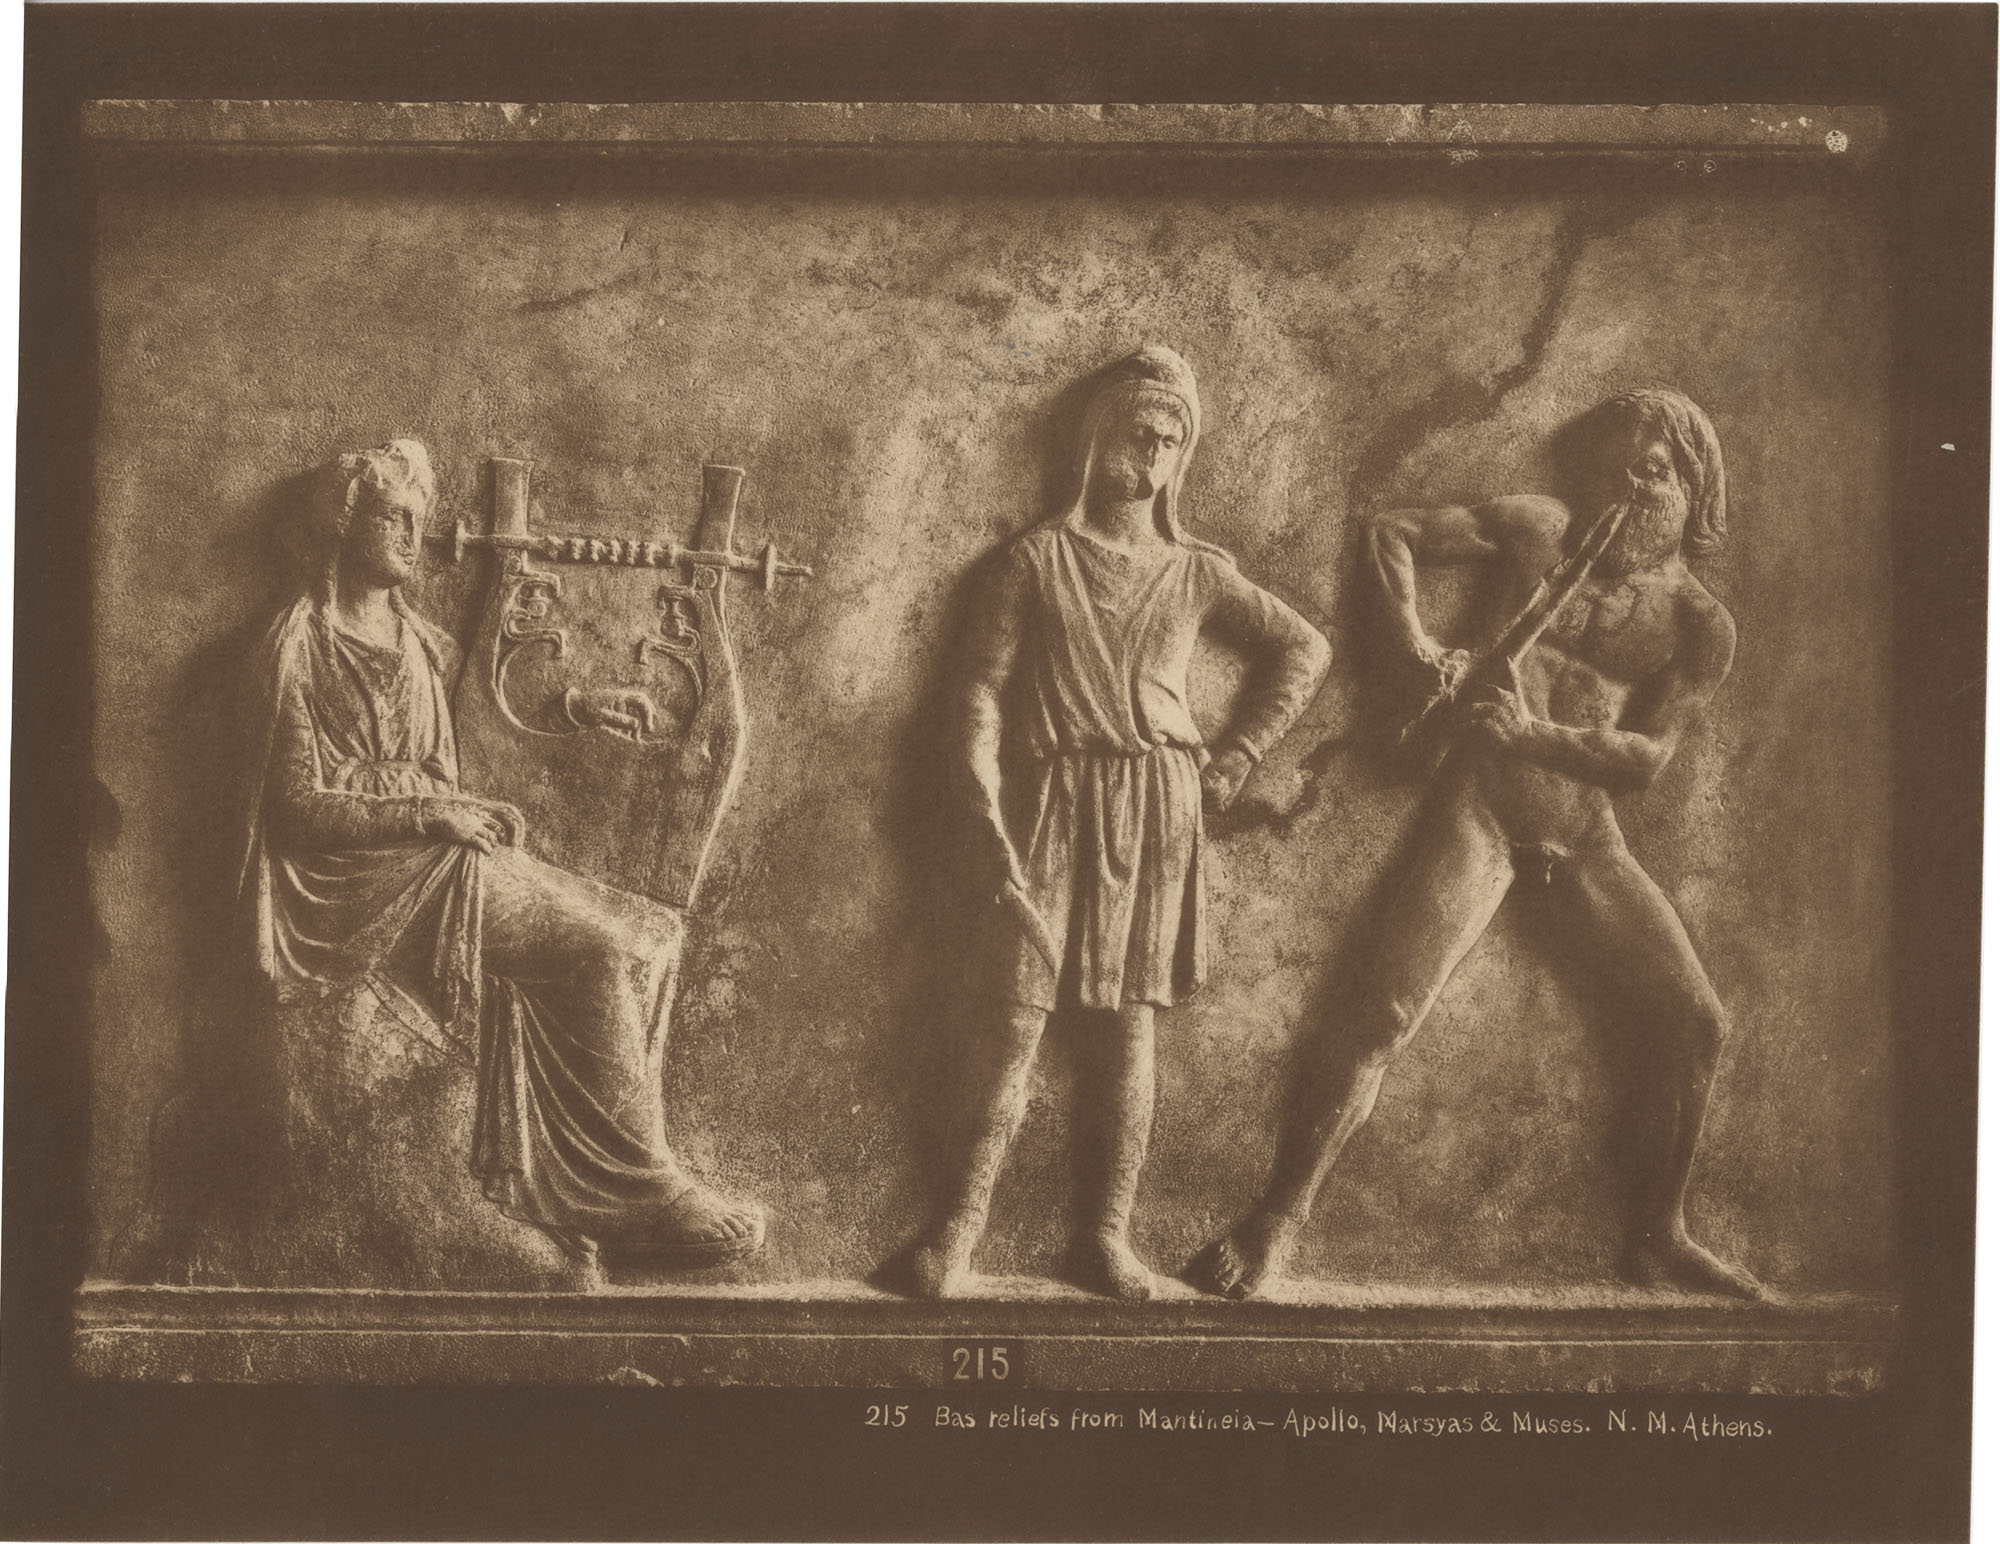 Sculpture from Athens, Greece, Photograph 8